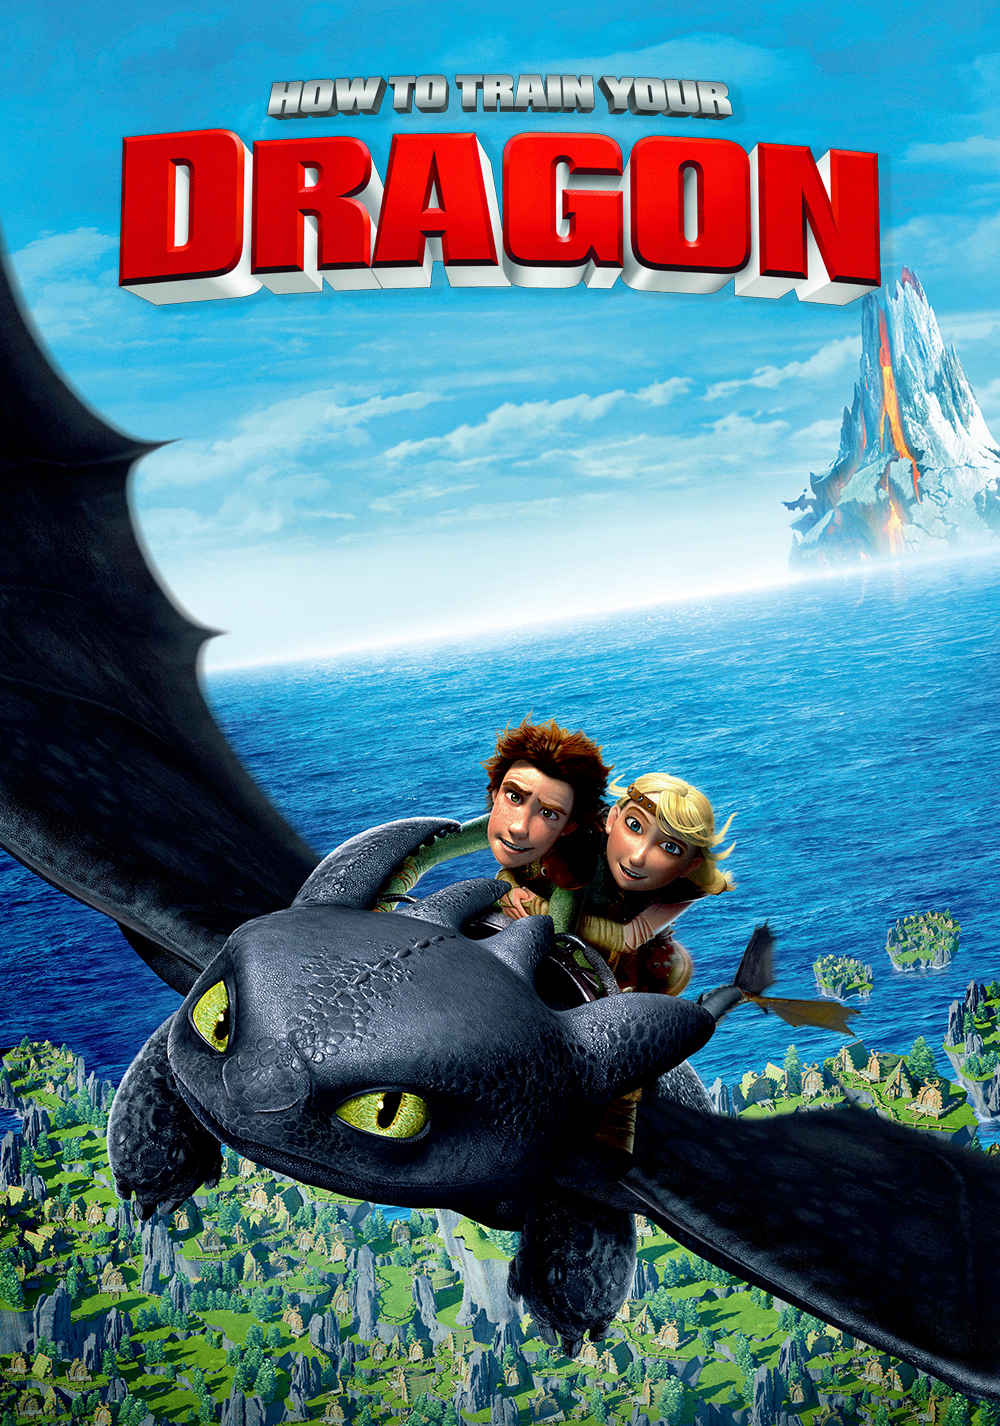 how to train your dragon full movie free download hd